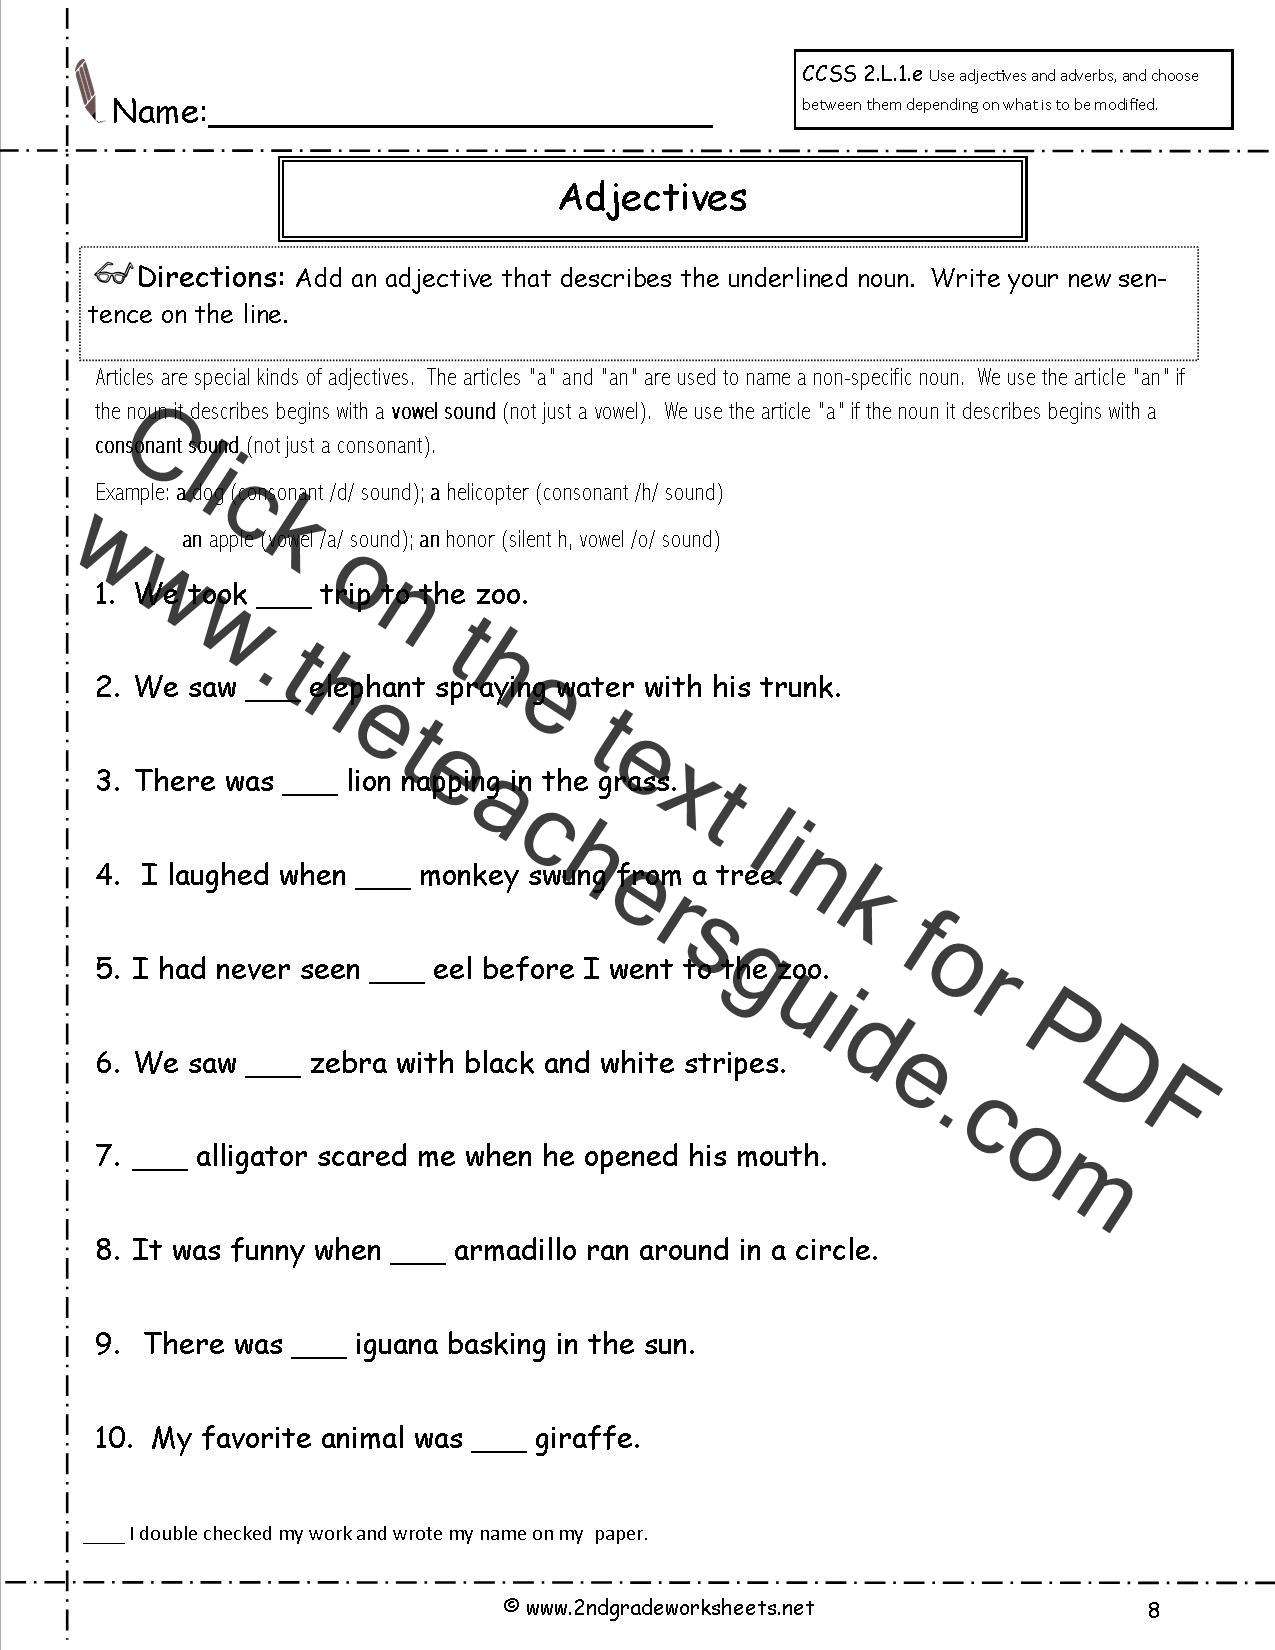 ... noconformity free languagegrammar worksheets and printouts worksheets